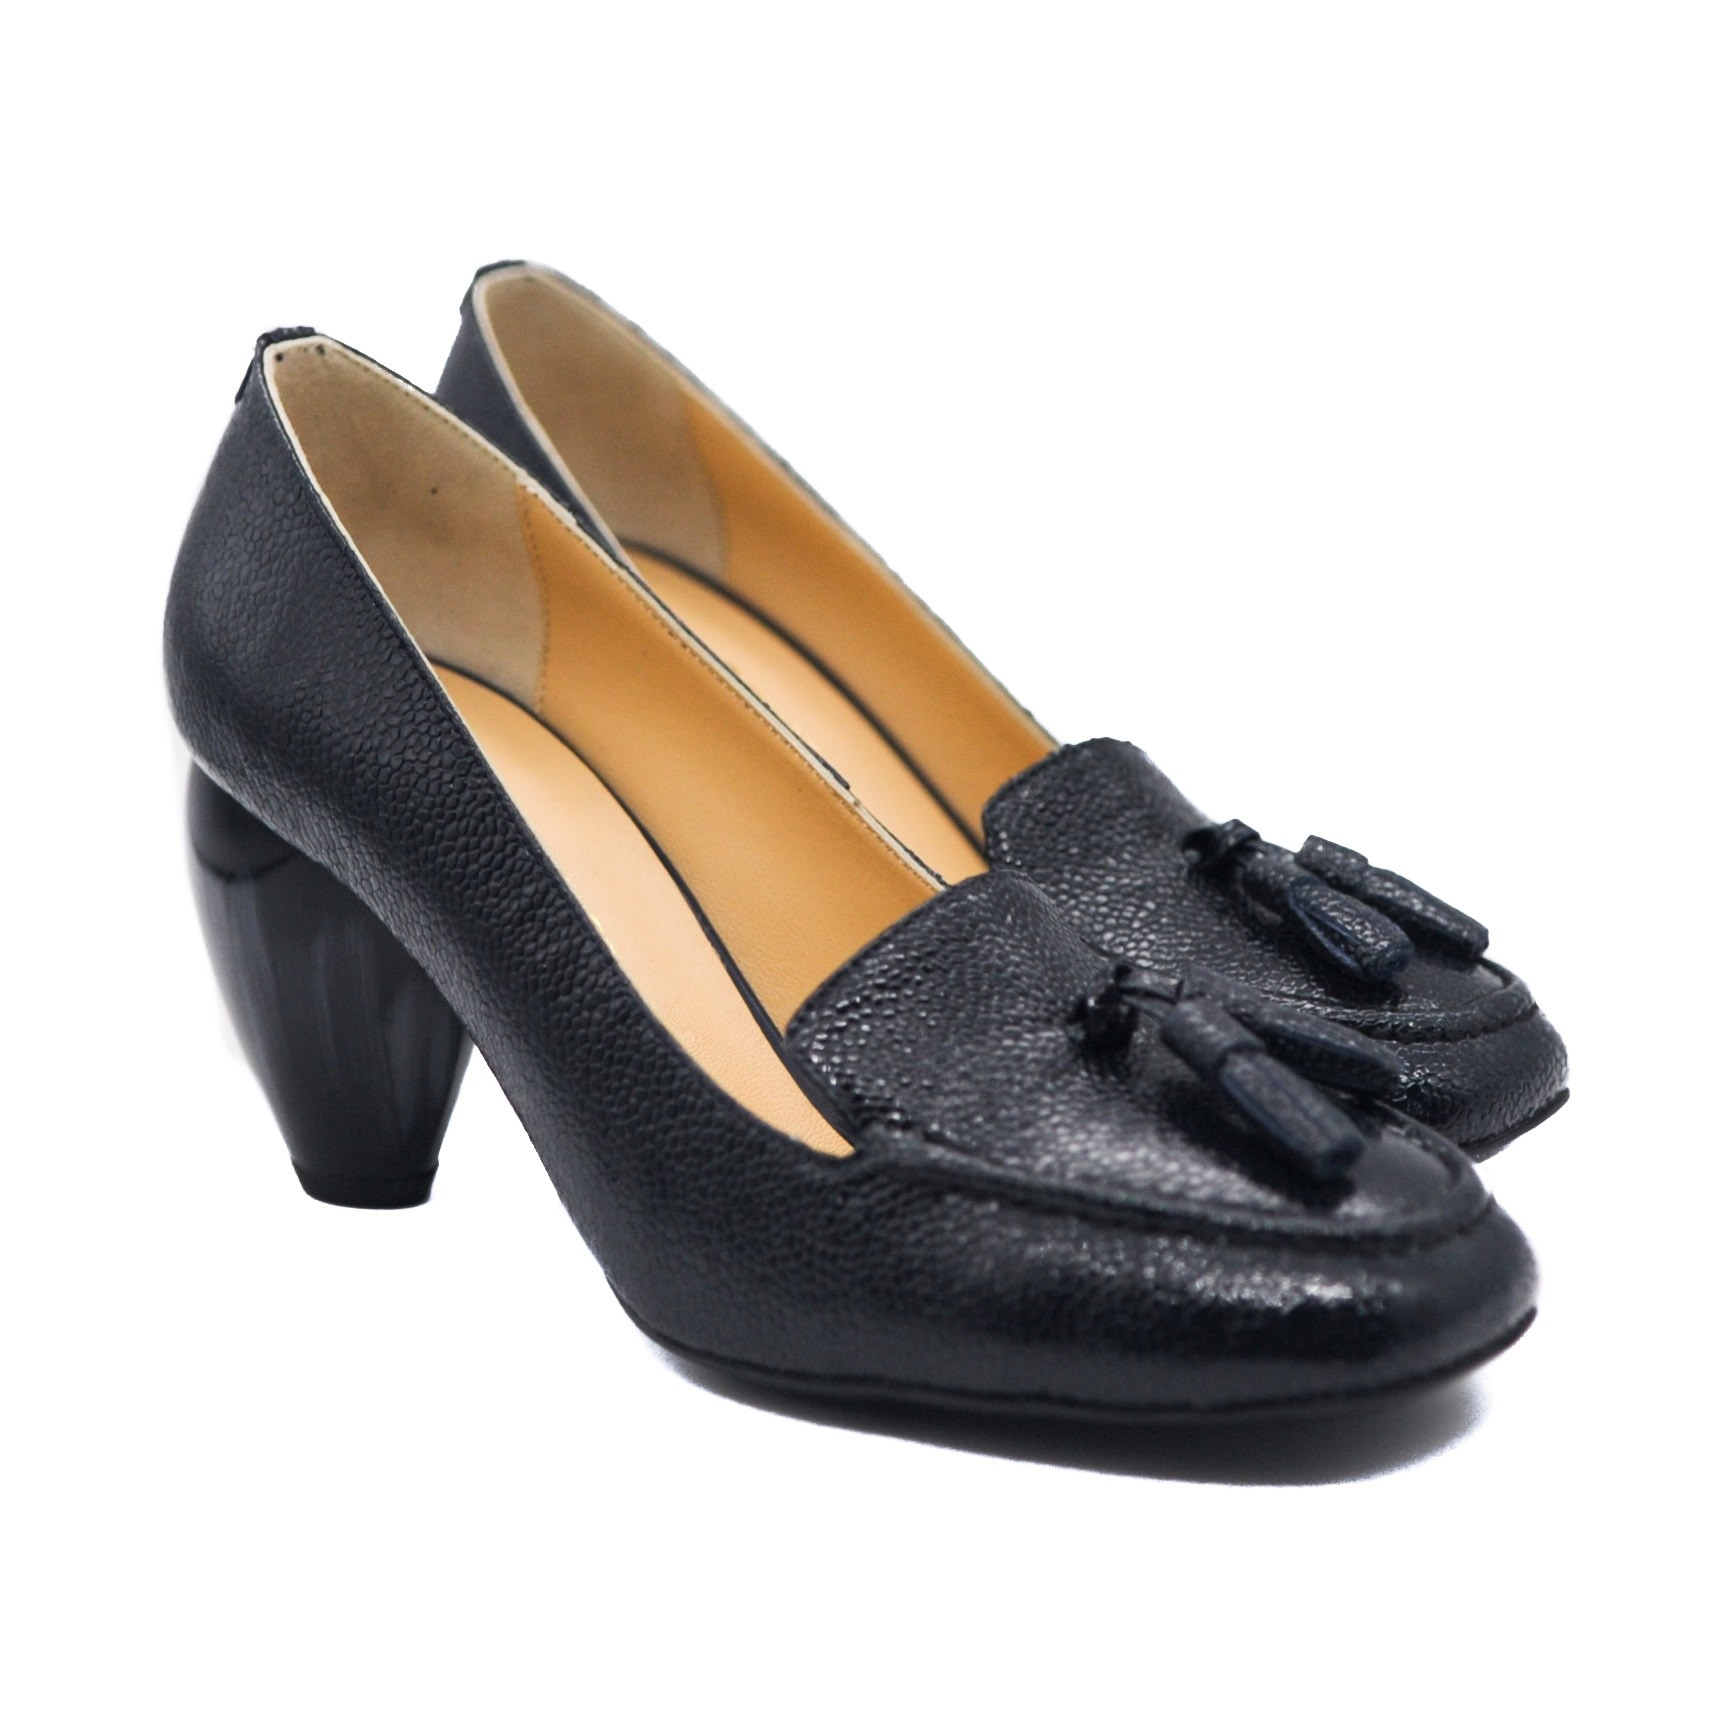 Goody2Shoes Ladies' Loafer Slip-On Courts in Navy with Tulip Heel